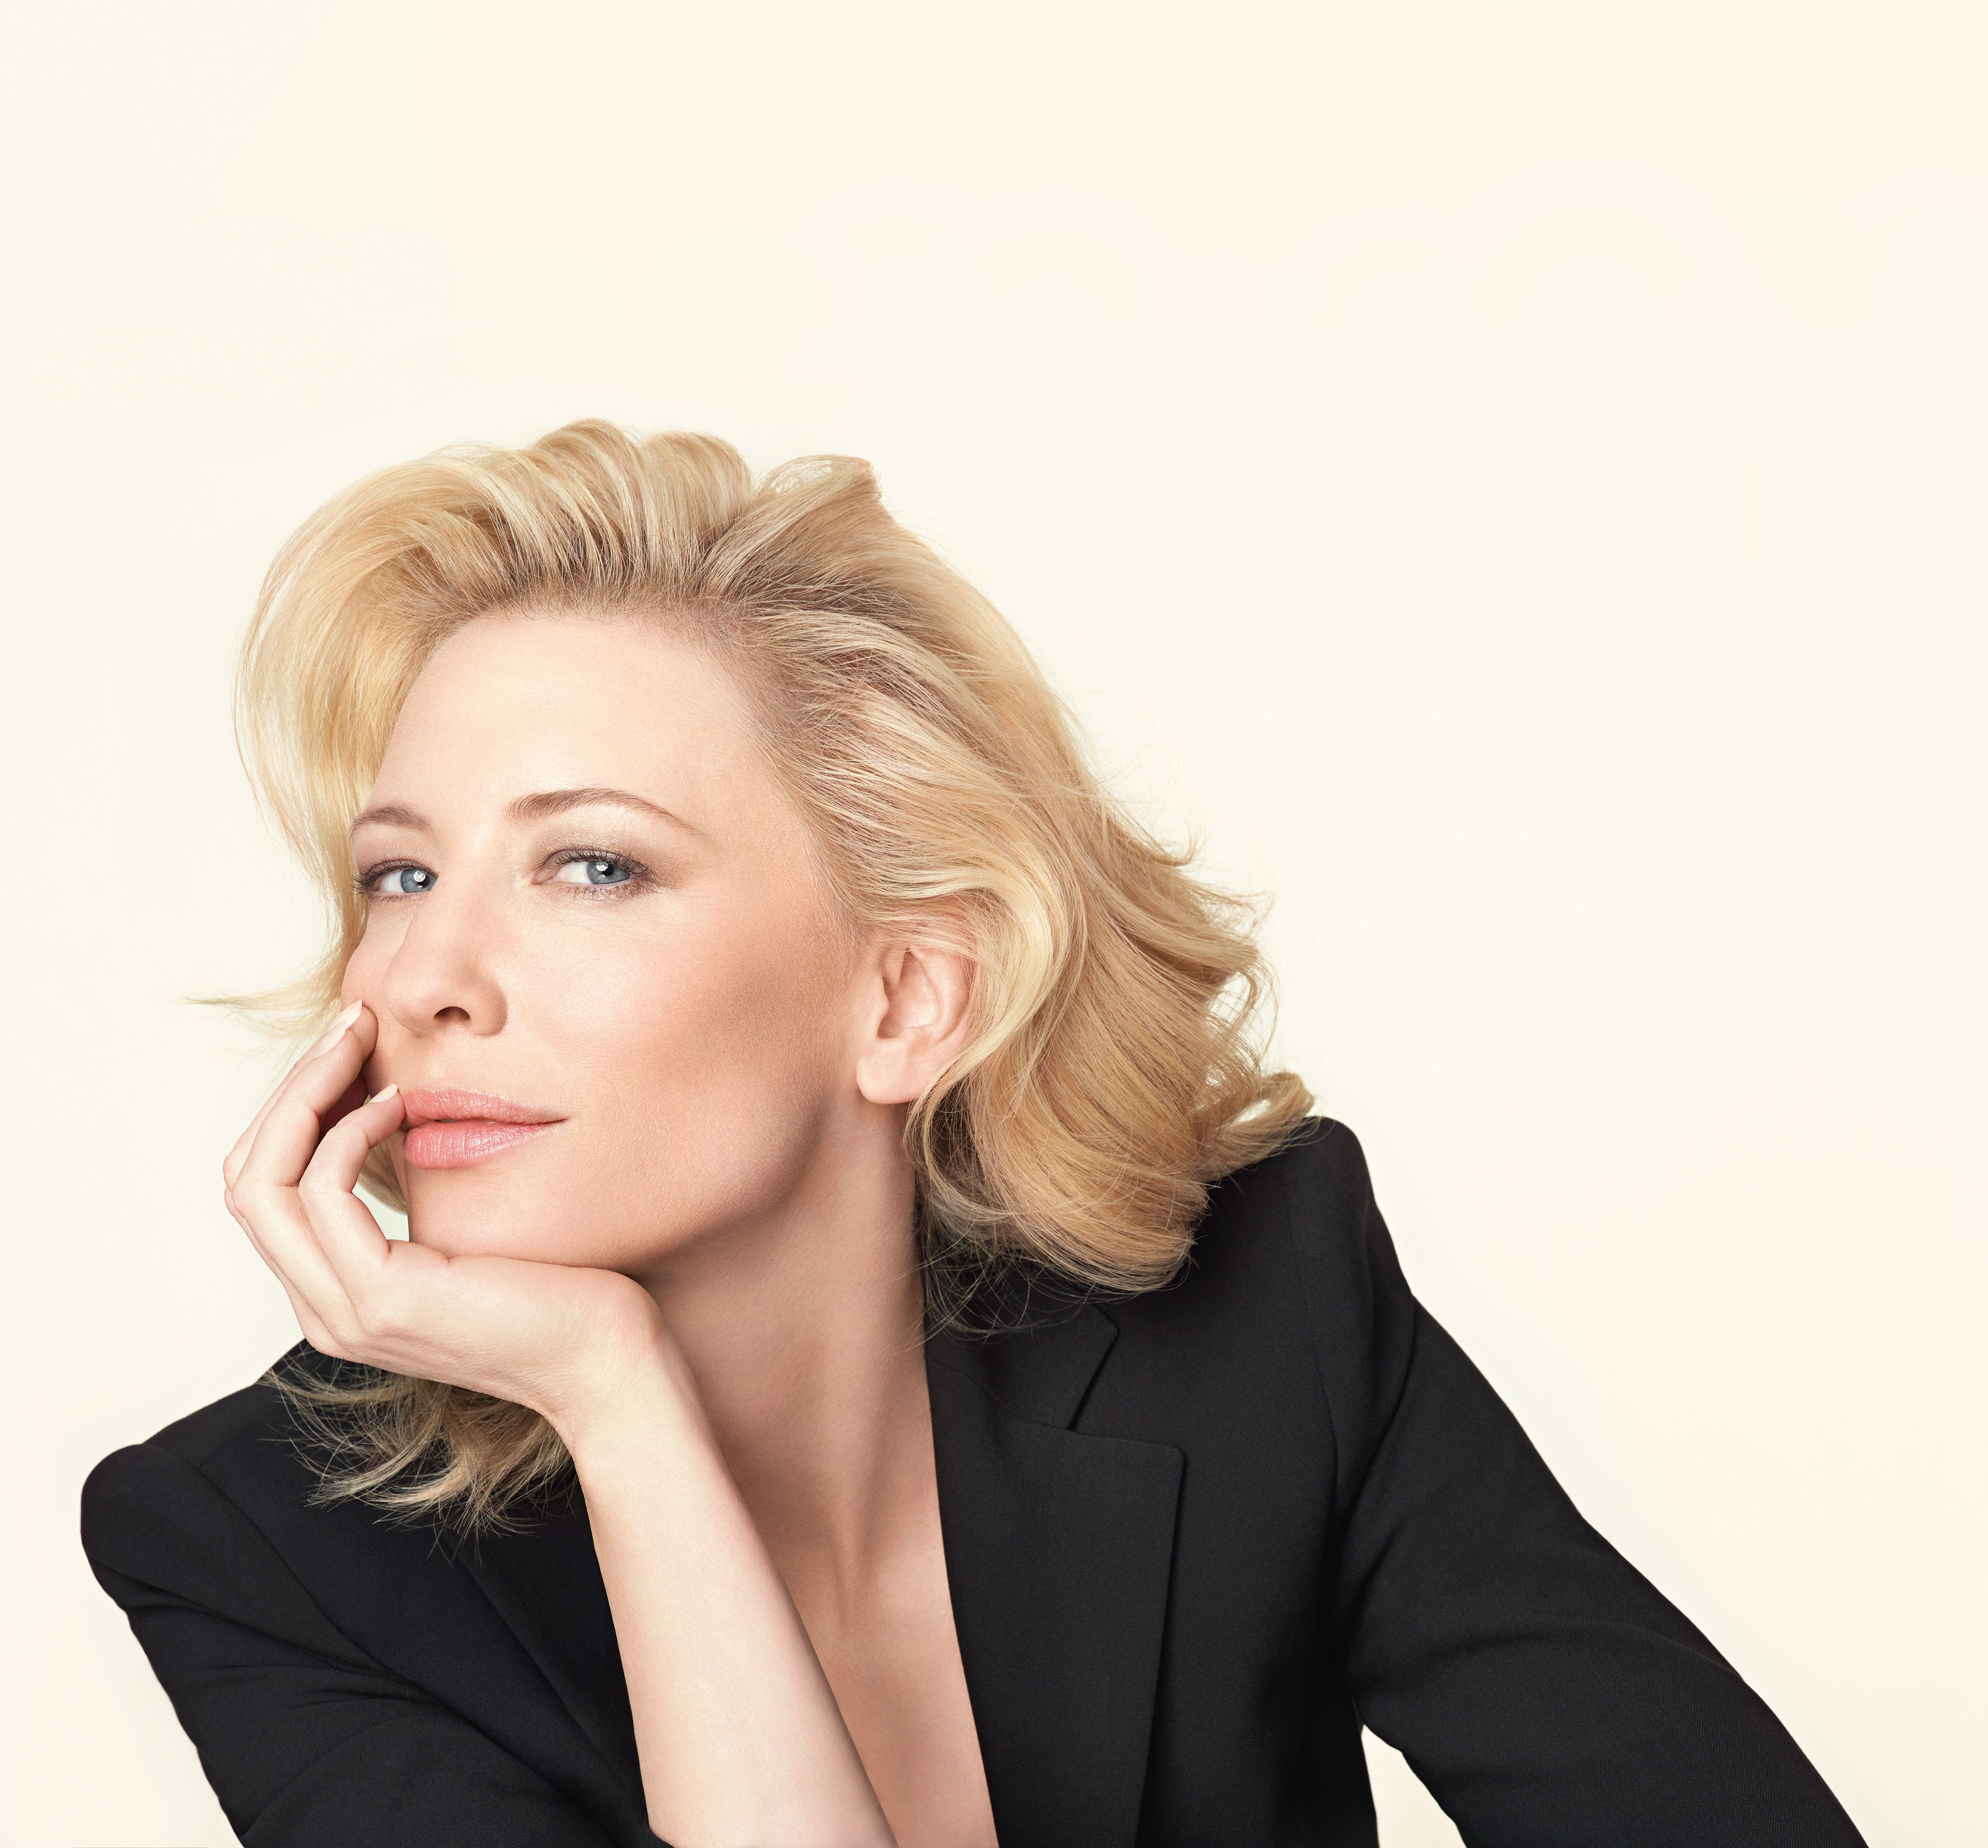 a872db28011a3d Cate Blanchett is the face of Si Intense, a fragrance of passion from   armani, available now  Stuttafords za